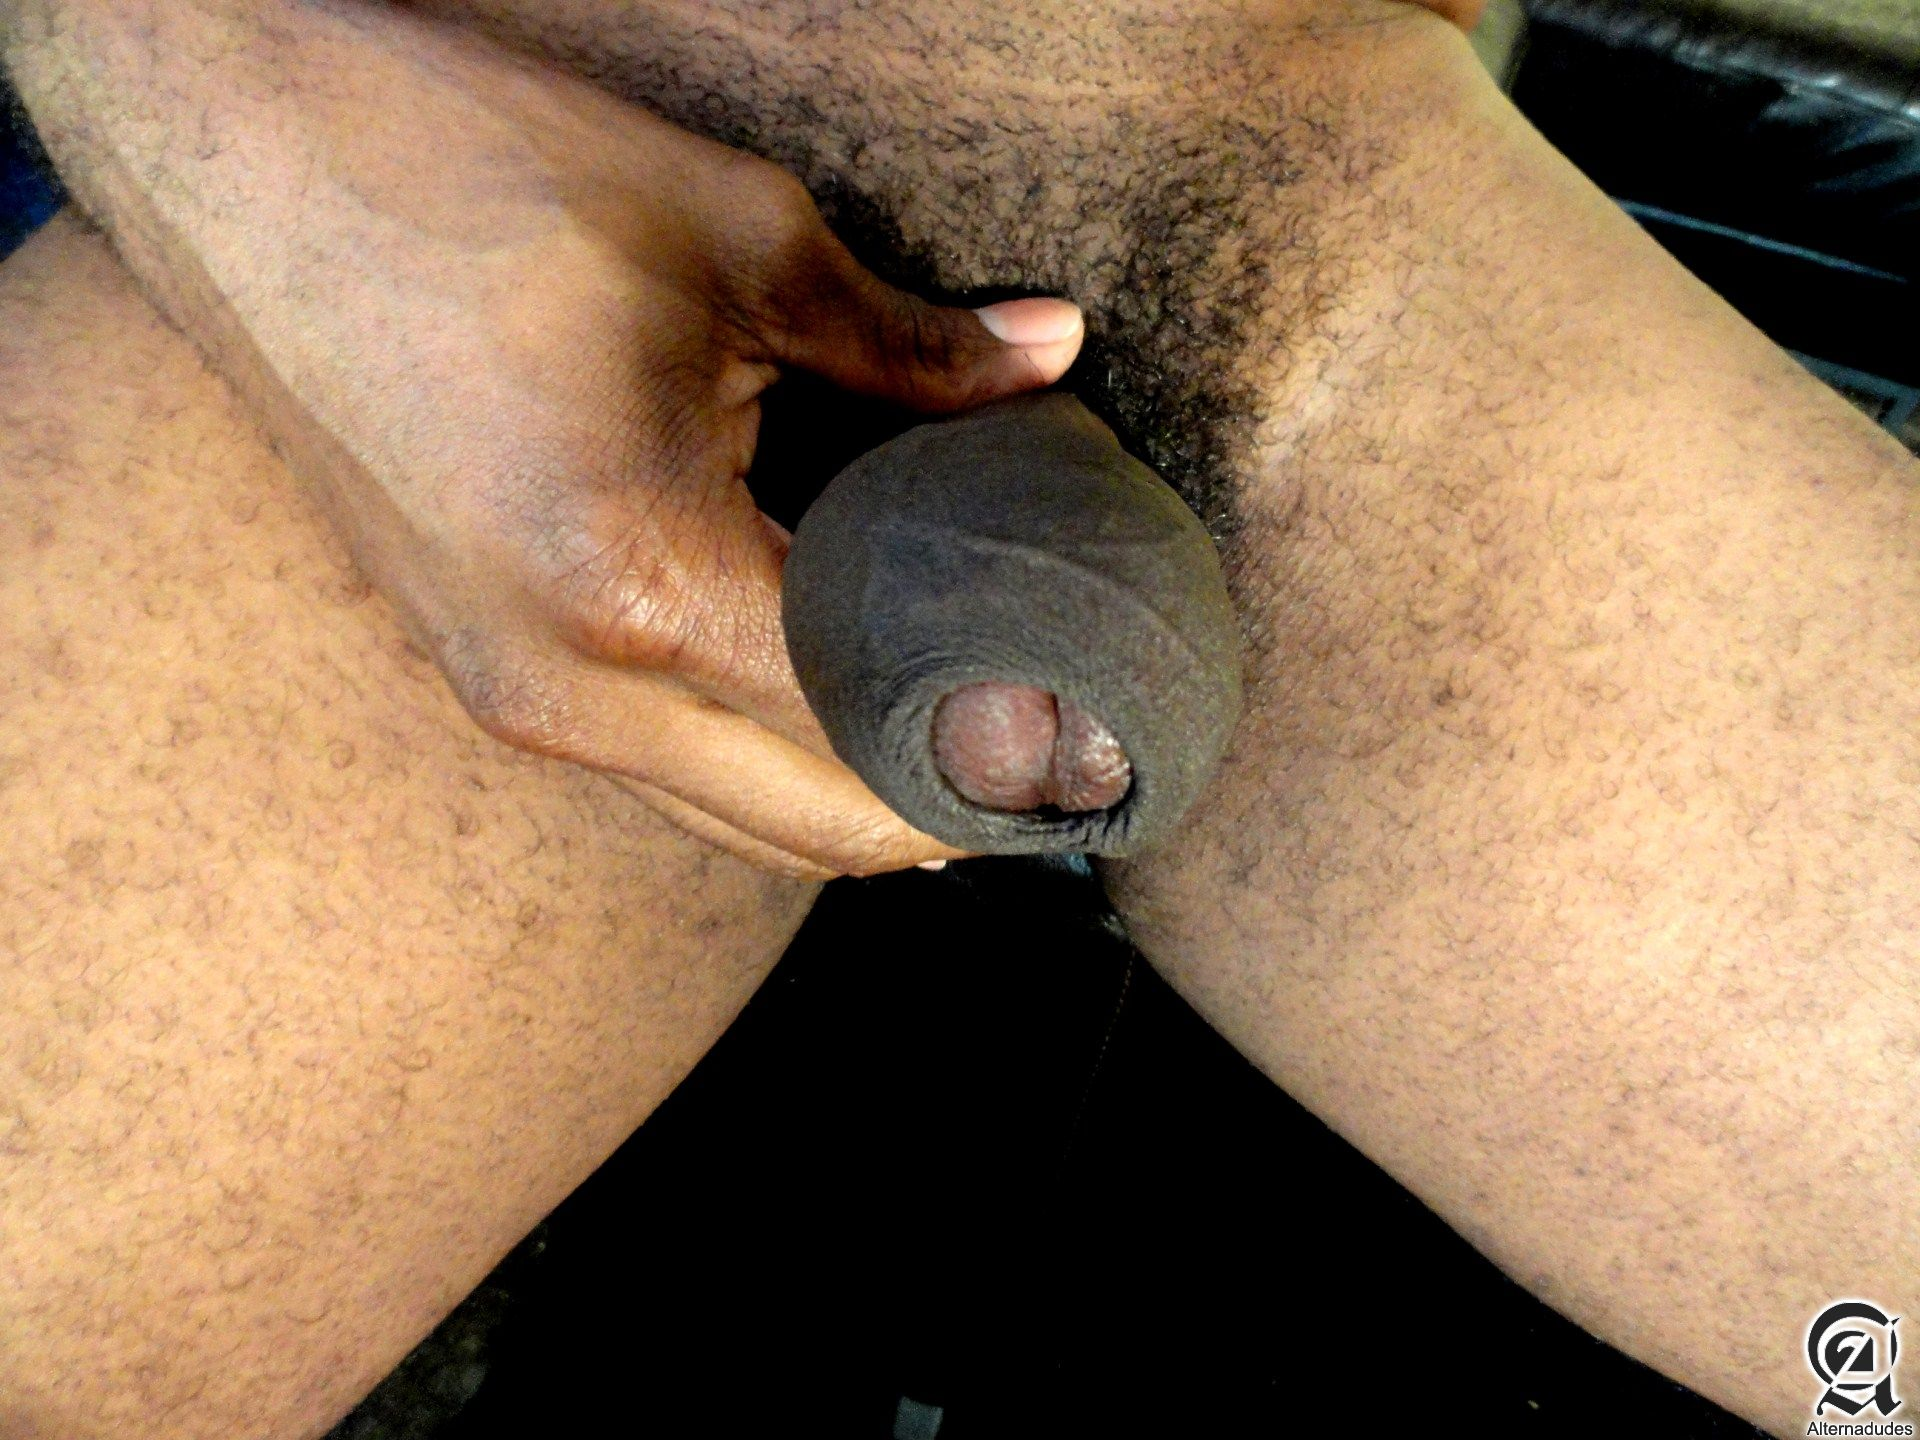 Teen guy riding cock at casting